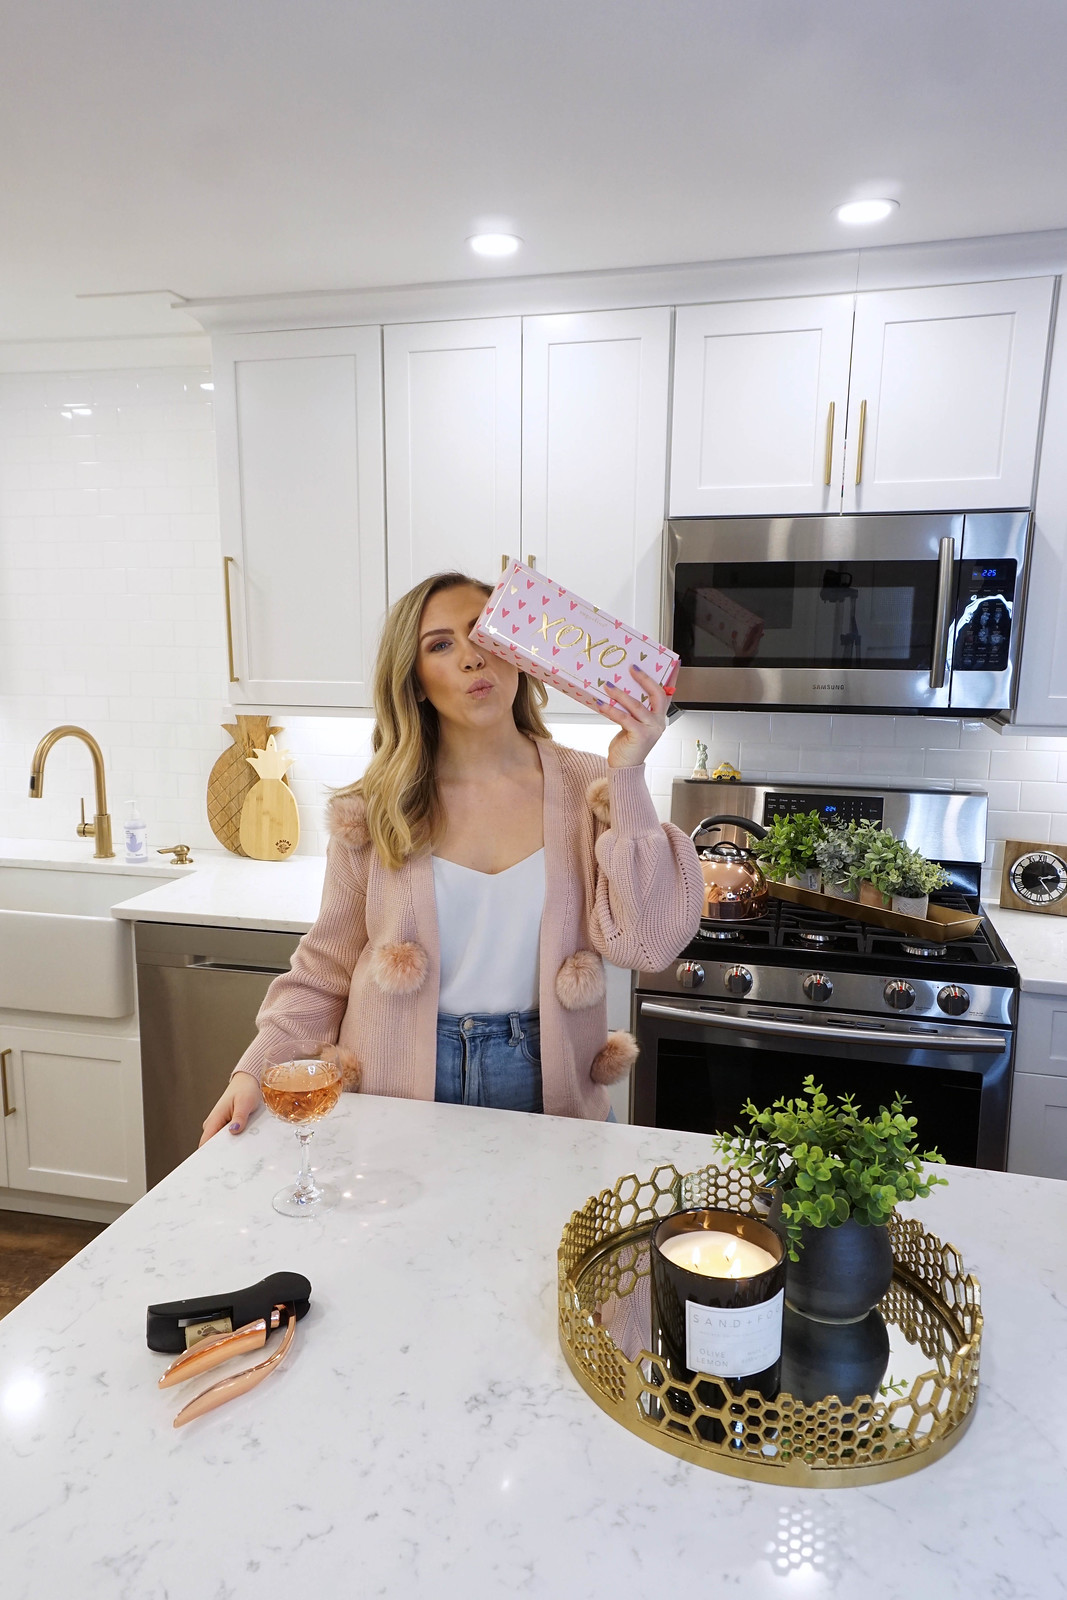 Pink Pom Pom Cardigan XOXO Sugarfina Valentine's Day Candies White Kitchen Gold Hardware Stainless Steel Appliances